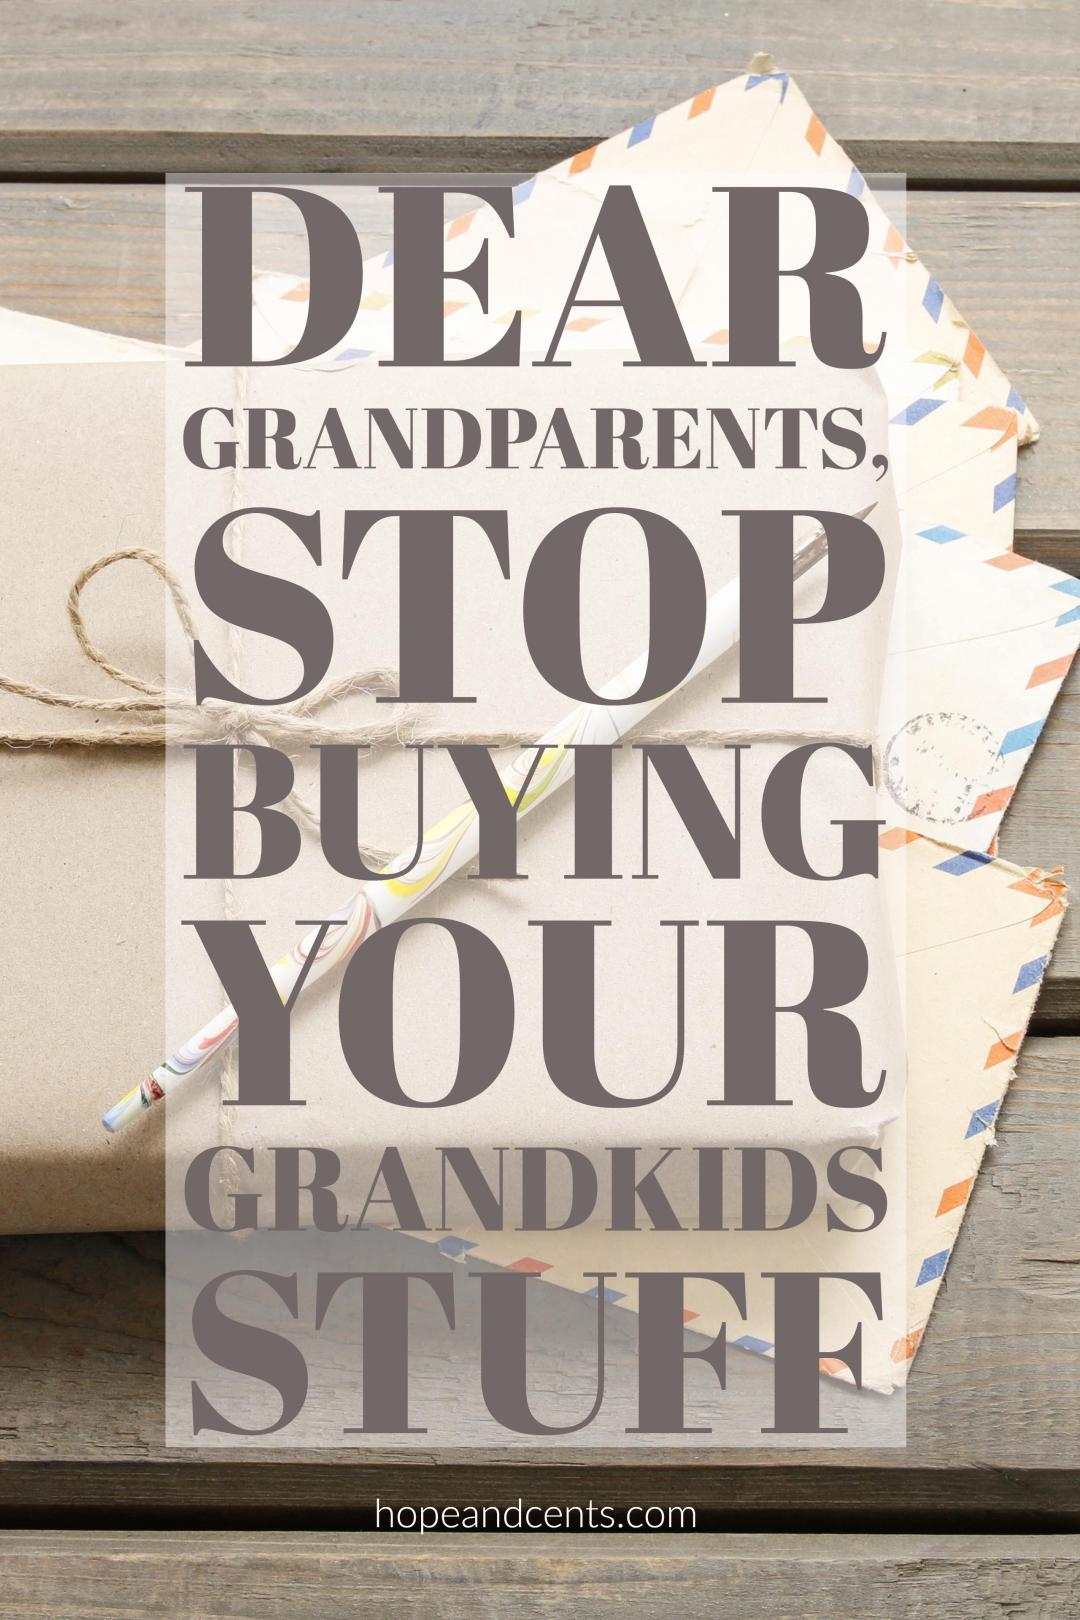 Buying stuff for grandkids is fun — for everyone involved, but with college getting more and more expensive and the student loan crisis worsening, is there a better way for grandparents to spoil their grandkids? If you are a parent or a grandparent maybe the kids could use less stuff and more funding for college. | saving for college | saving money for college | going to college debt-free | paying for college |  debt-free living | money saving tips #money  #personalfinance